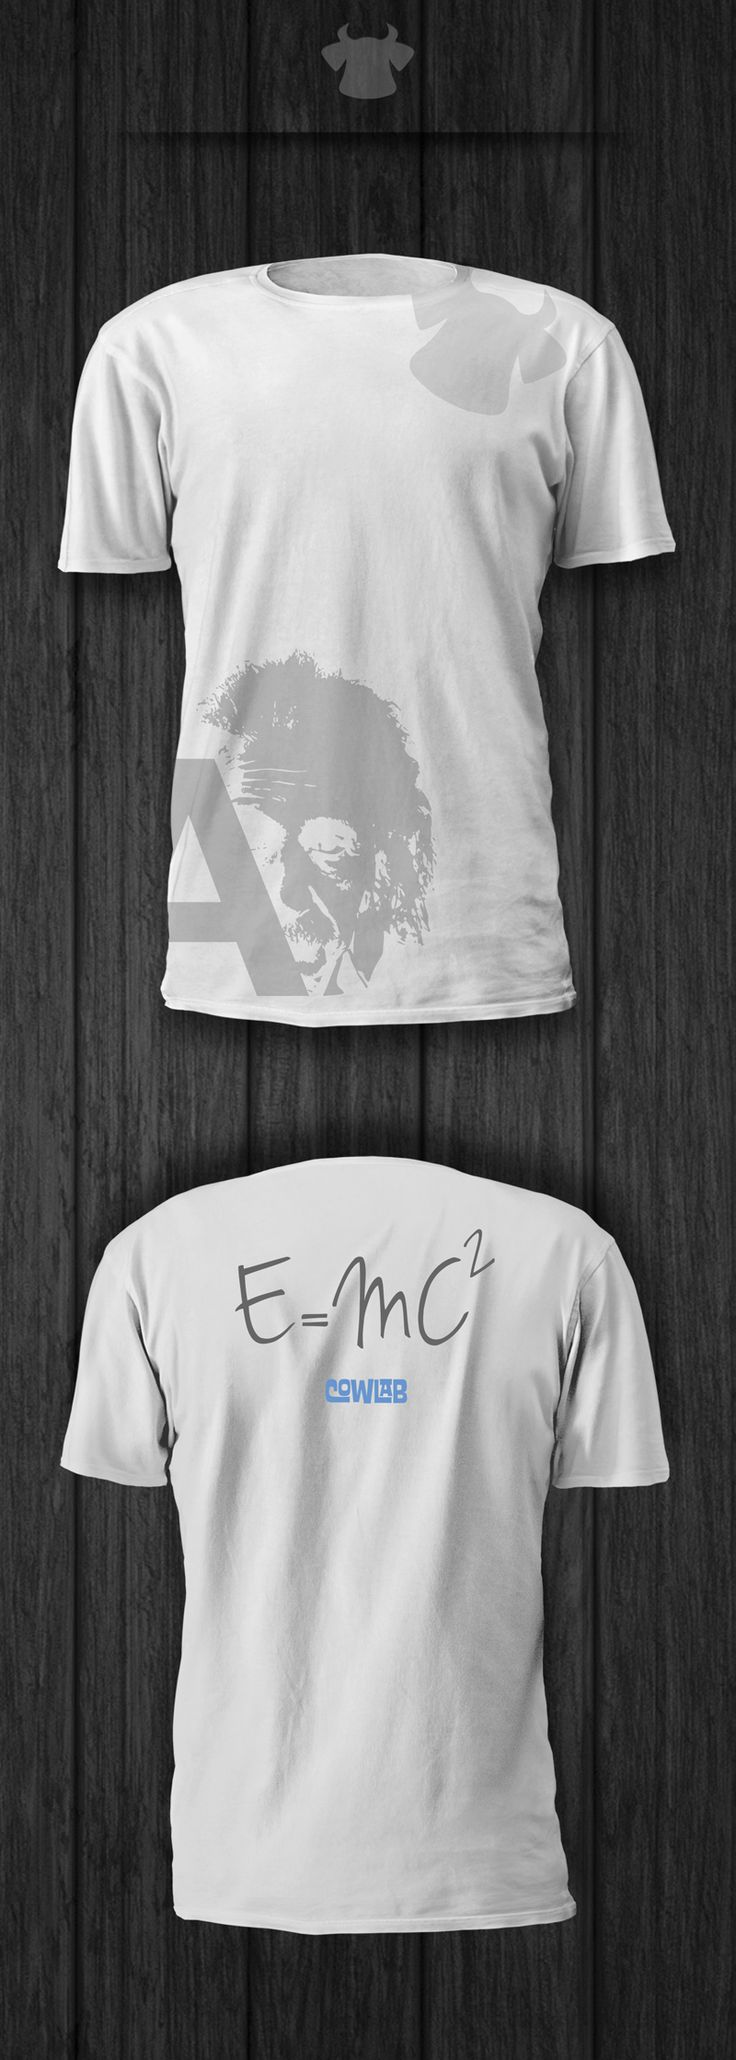 E=MC2... T-shirt dedicated to the great physicist Albert Einstein by Cowlab Studio